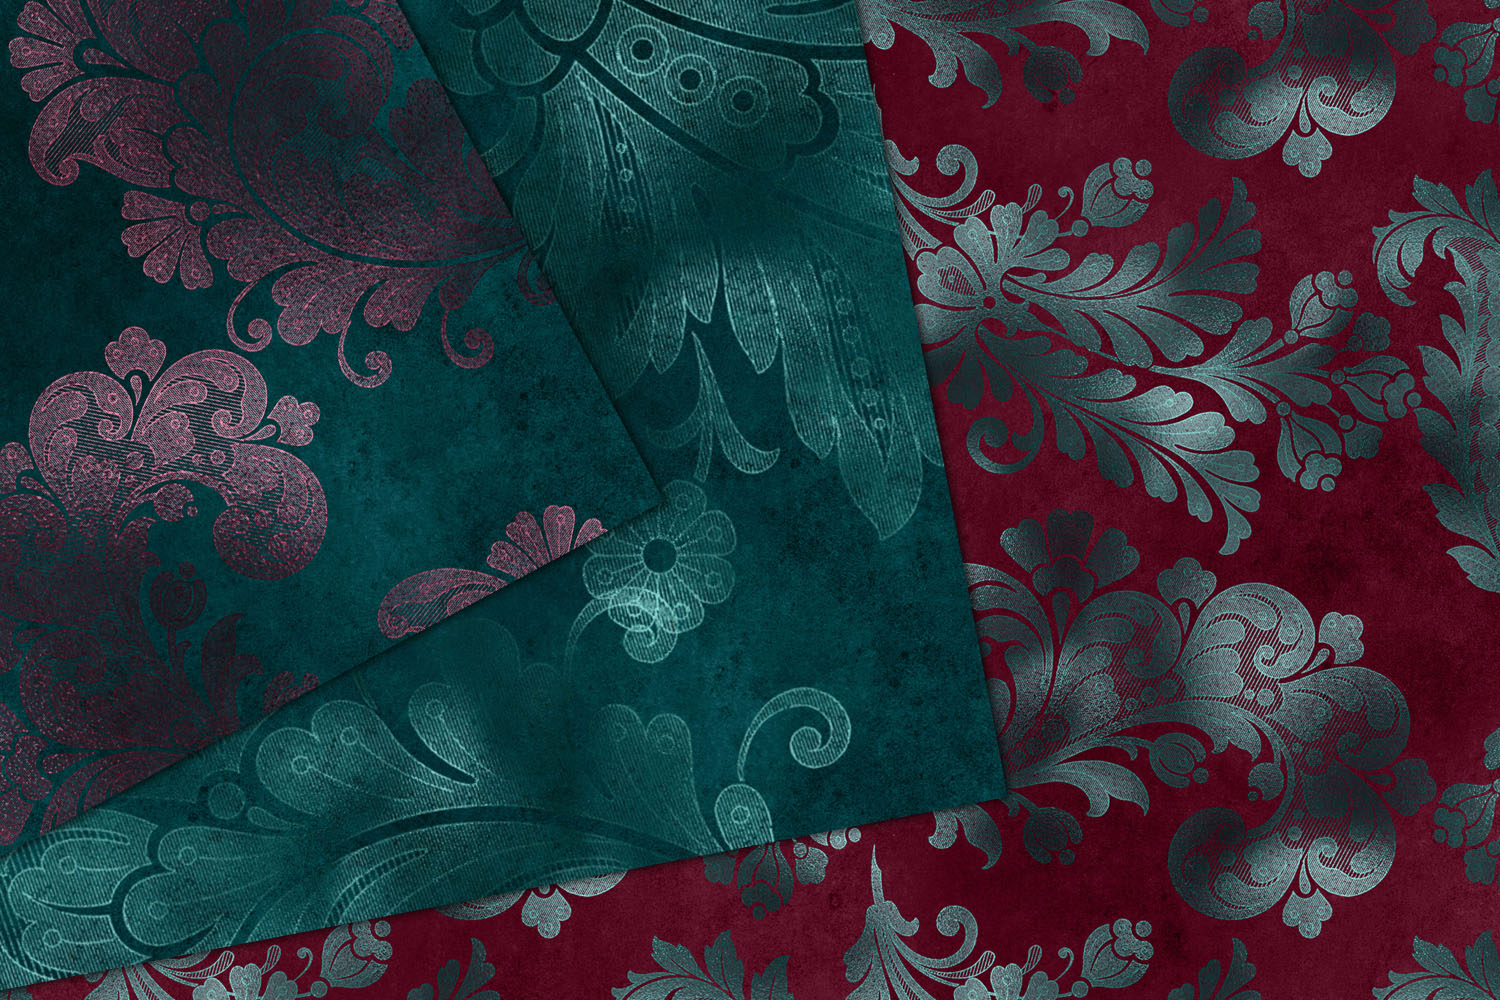 Teal and Burgundy Floral Digital Paper example image 3